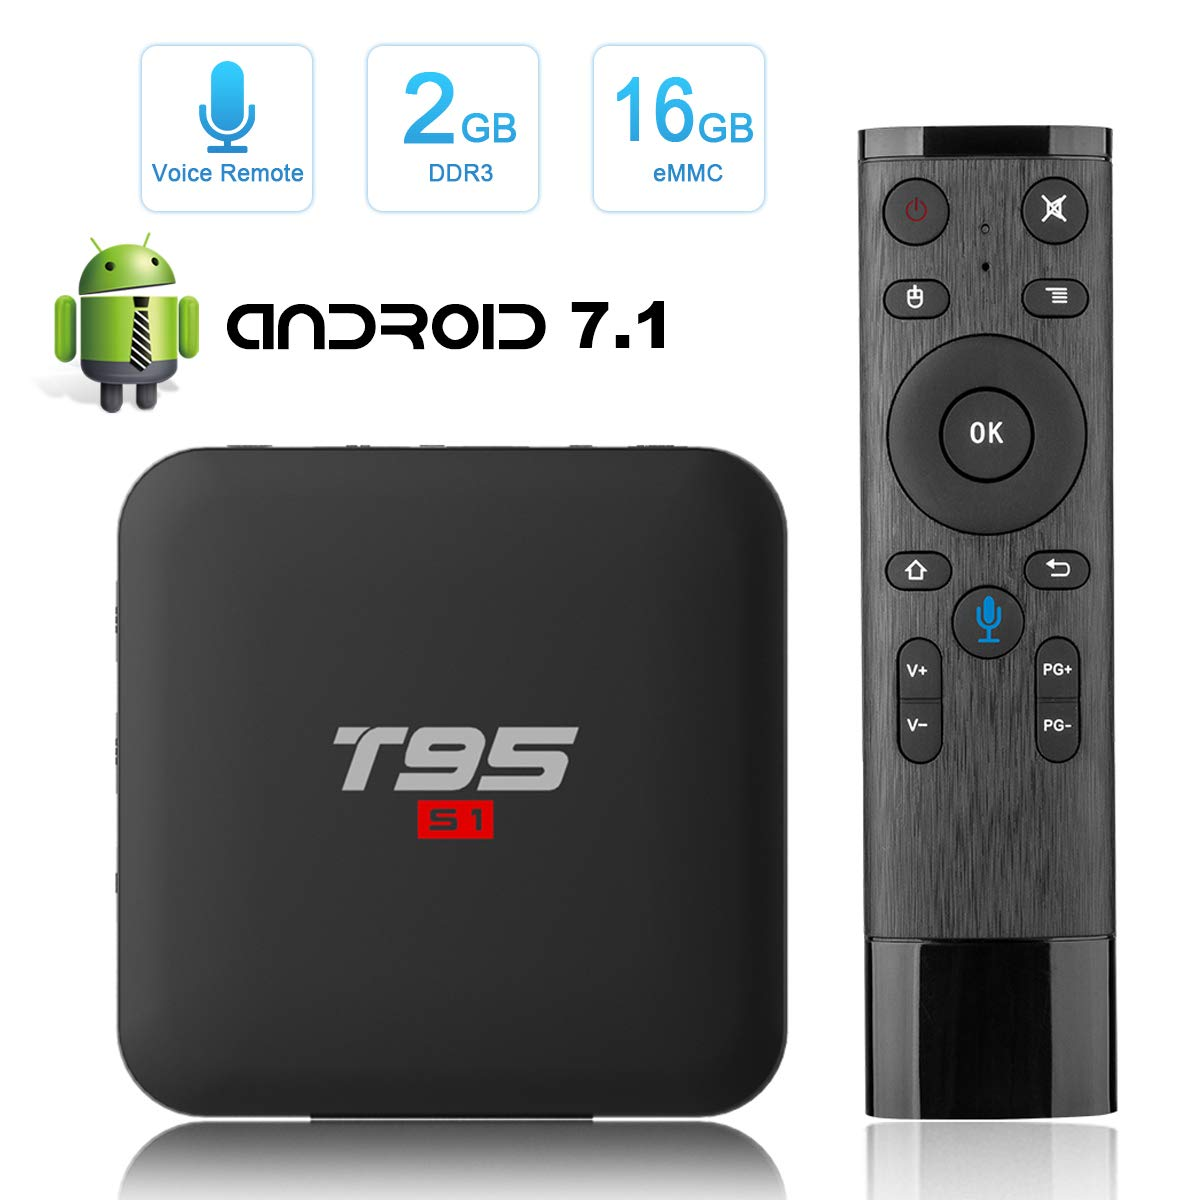 Android 7.1 TV Box, Tishow T95 S1 Smart Internet TV Box with 2GB RAM 16GB ROM, S905W Quad-core cortex-A53 WiFi Support H.265 4K Full HD with Remote Control